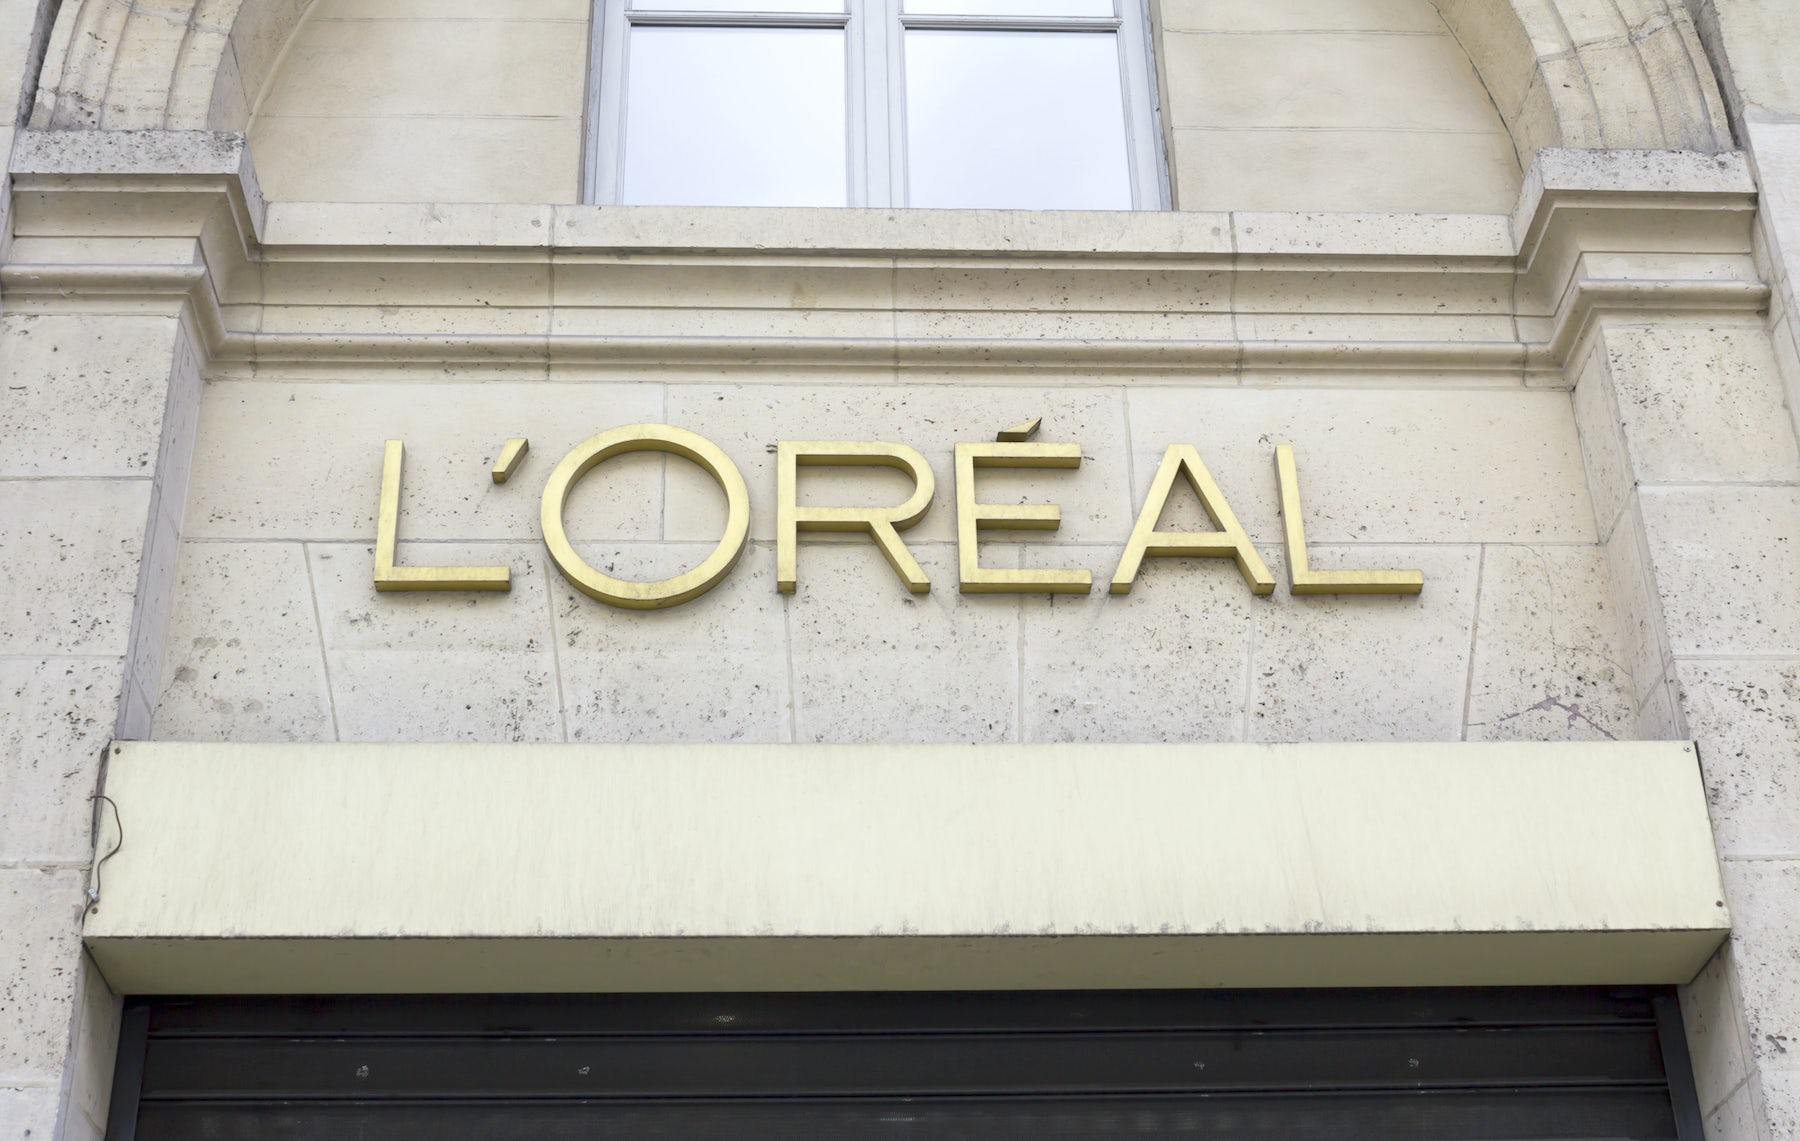 L'Oréal headquarters | Source: Shutterstock